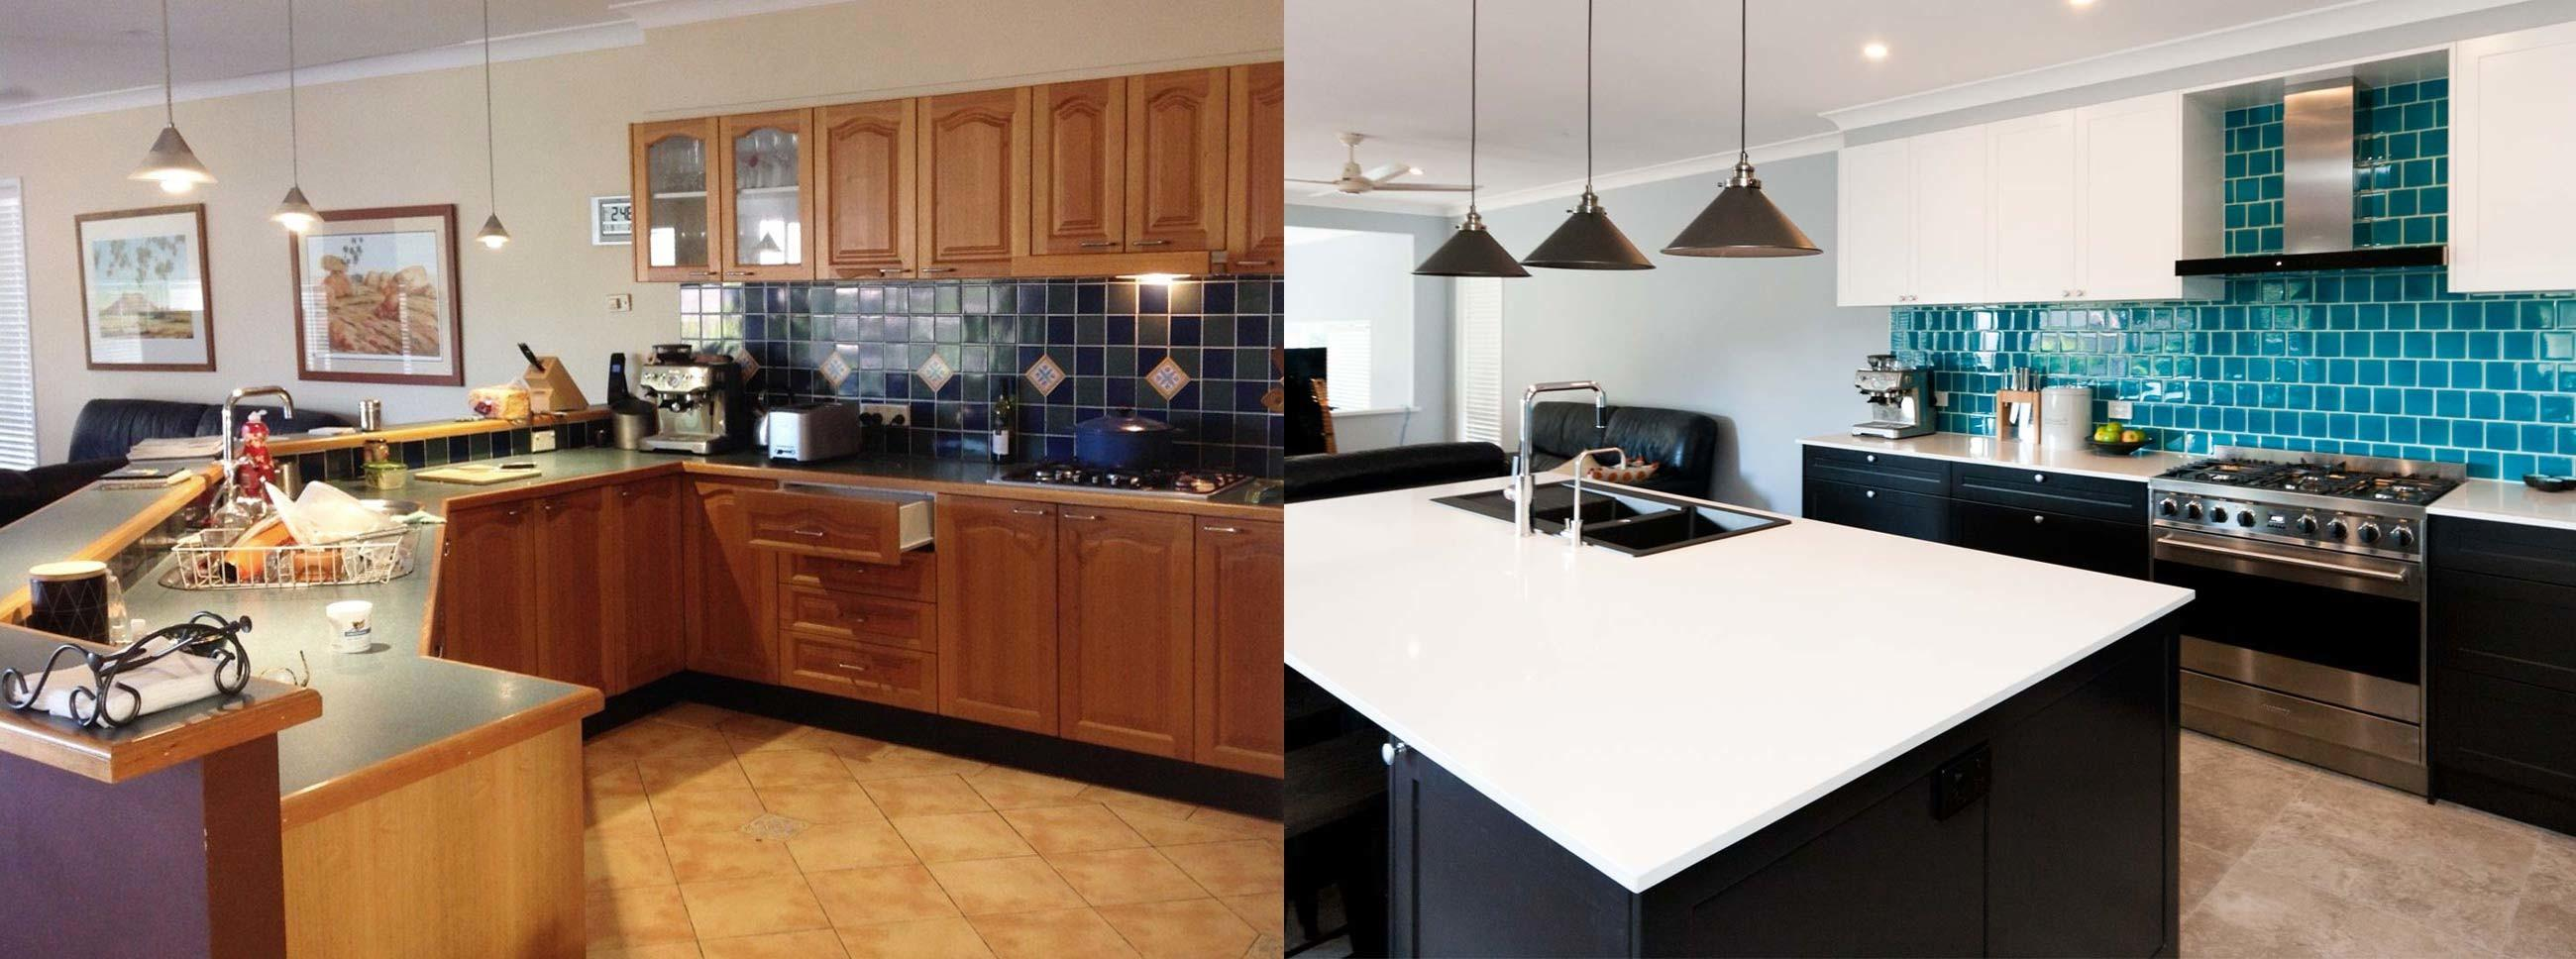 Kitchen Design Before After Renovation Black White